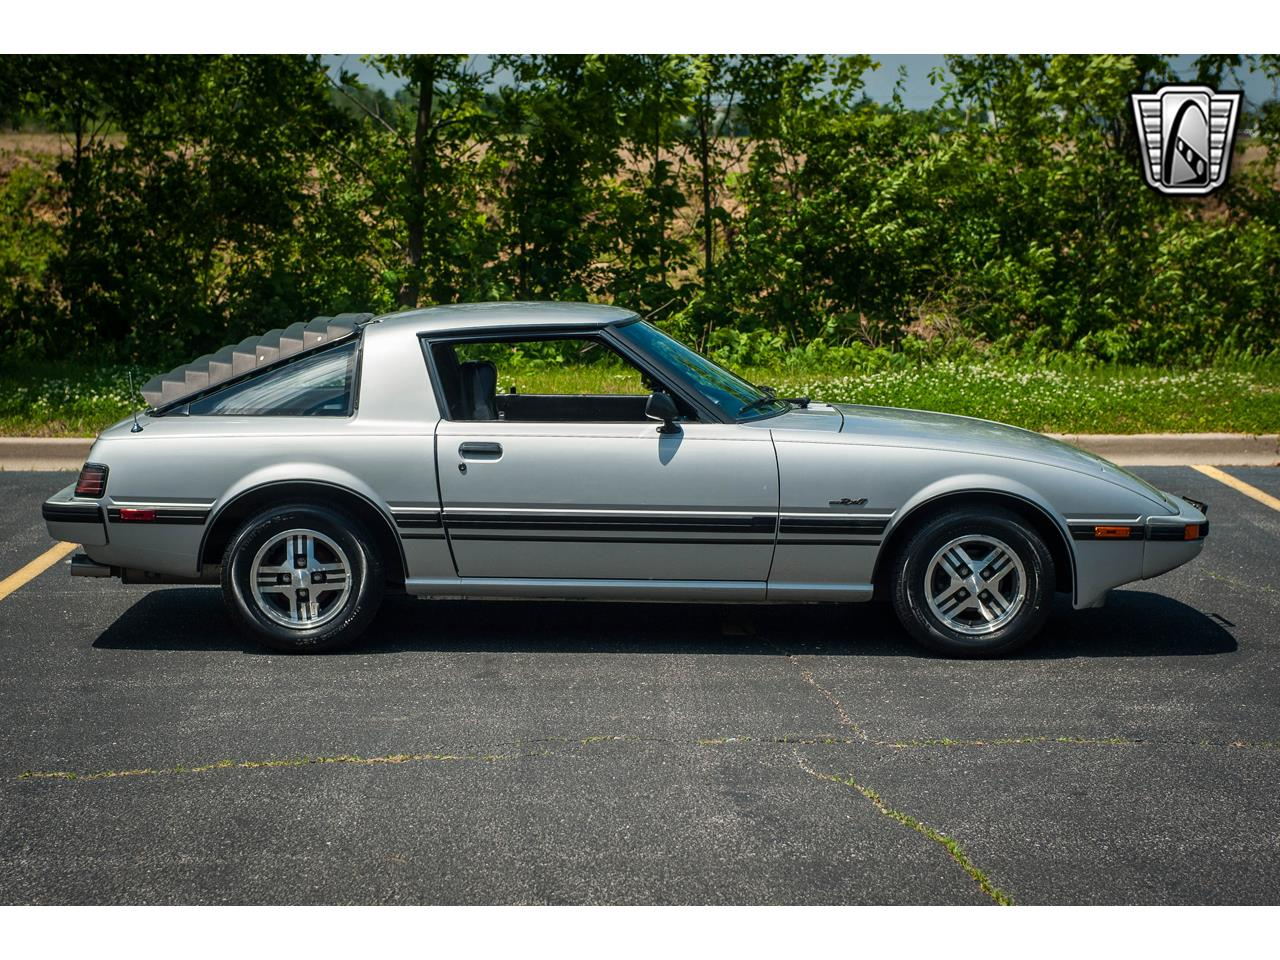 Large Picture of '82 Mazda RX-7 located in Illinois - QB9V